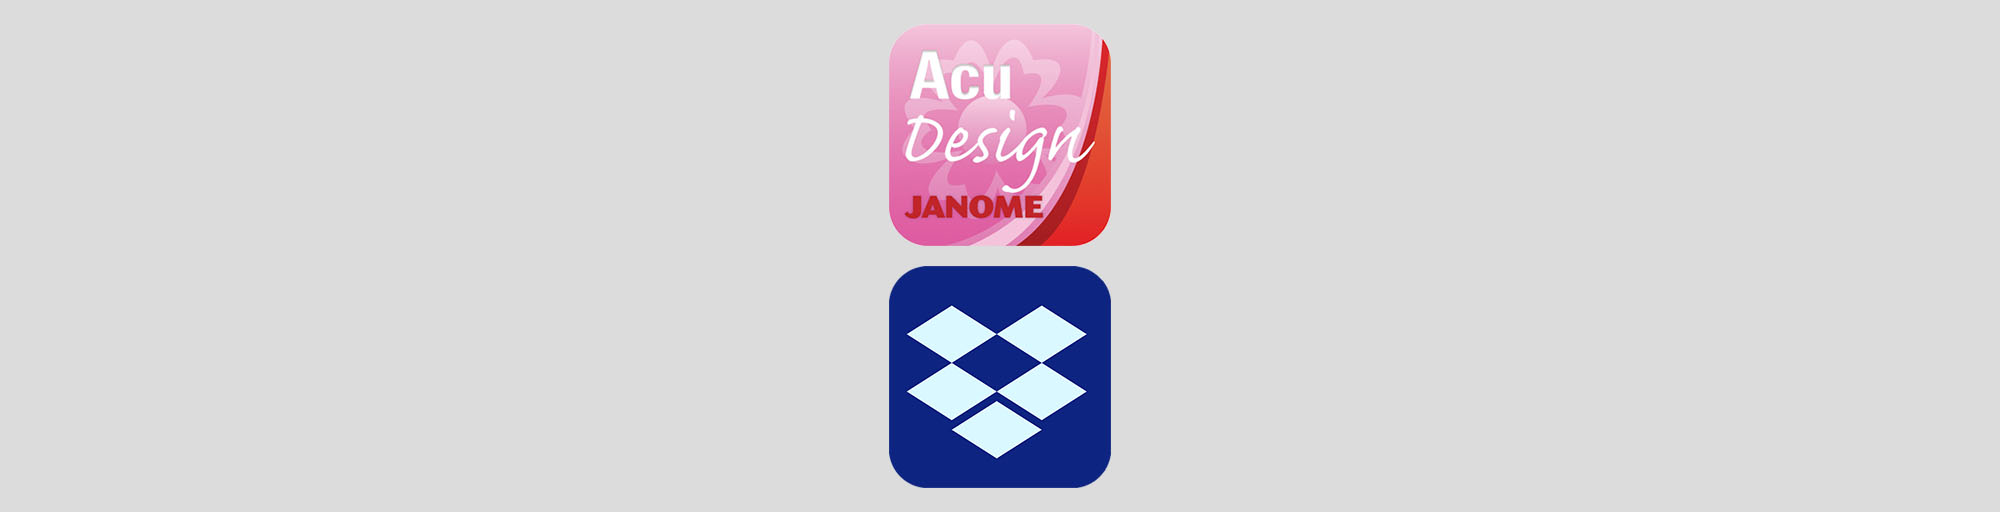 dropbox acudesign